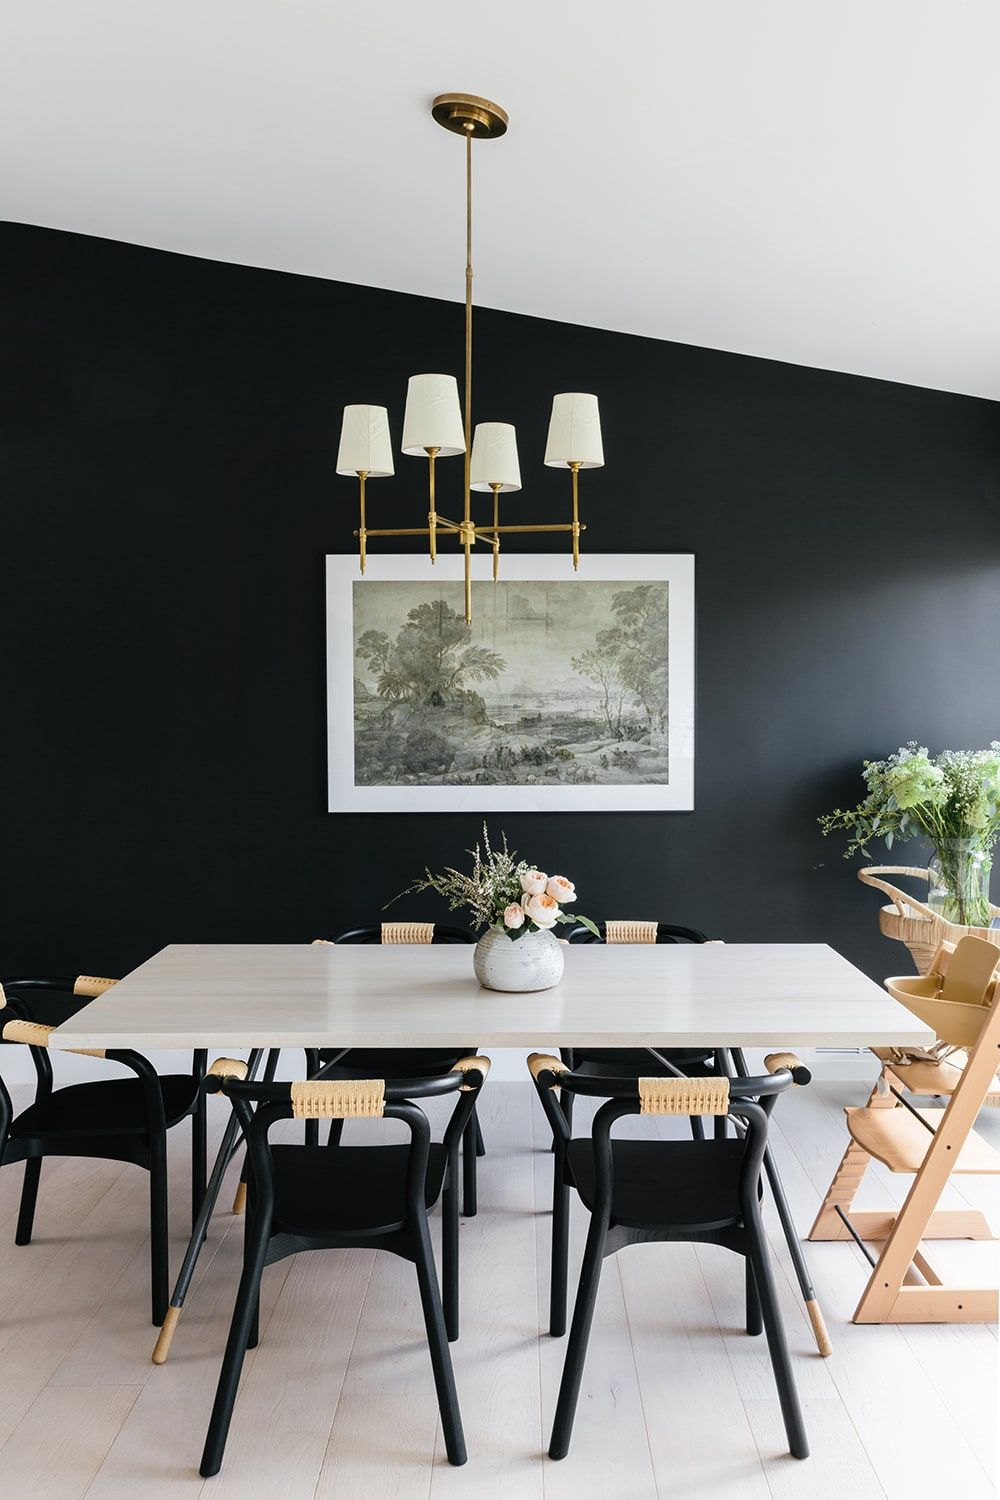 Black Accent Wall Ideas To Make A Bold Statement In Any Room Homelovr In 2020 Black Dining Room Dining Room Makeover Dining Room Design